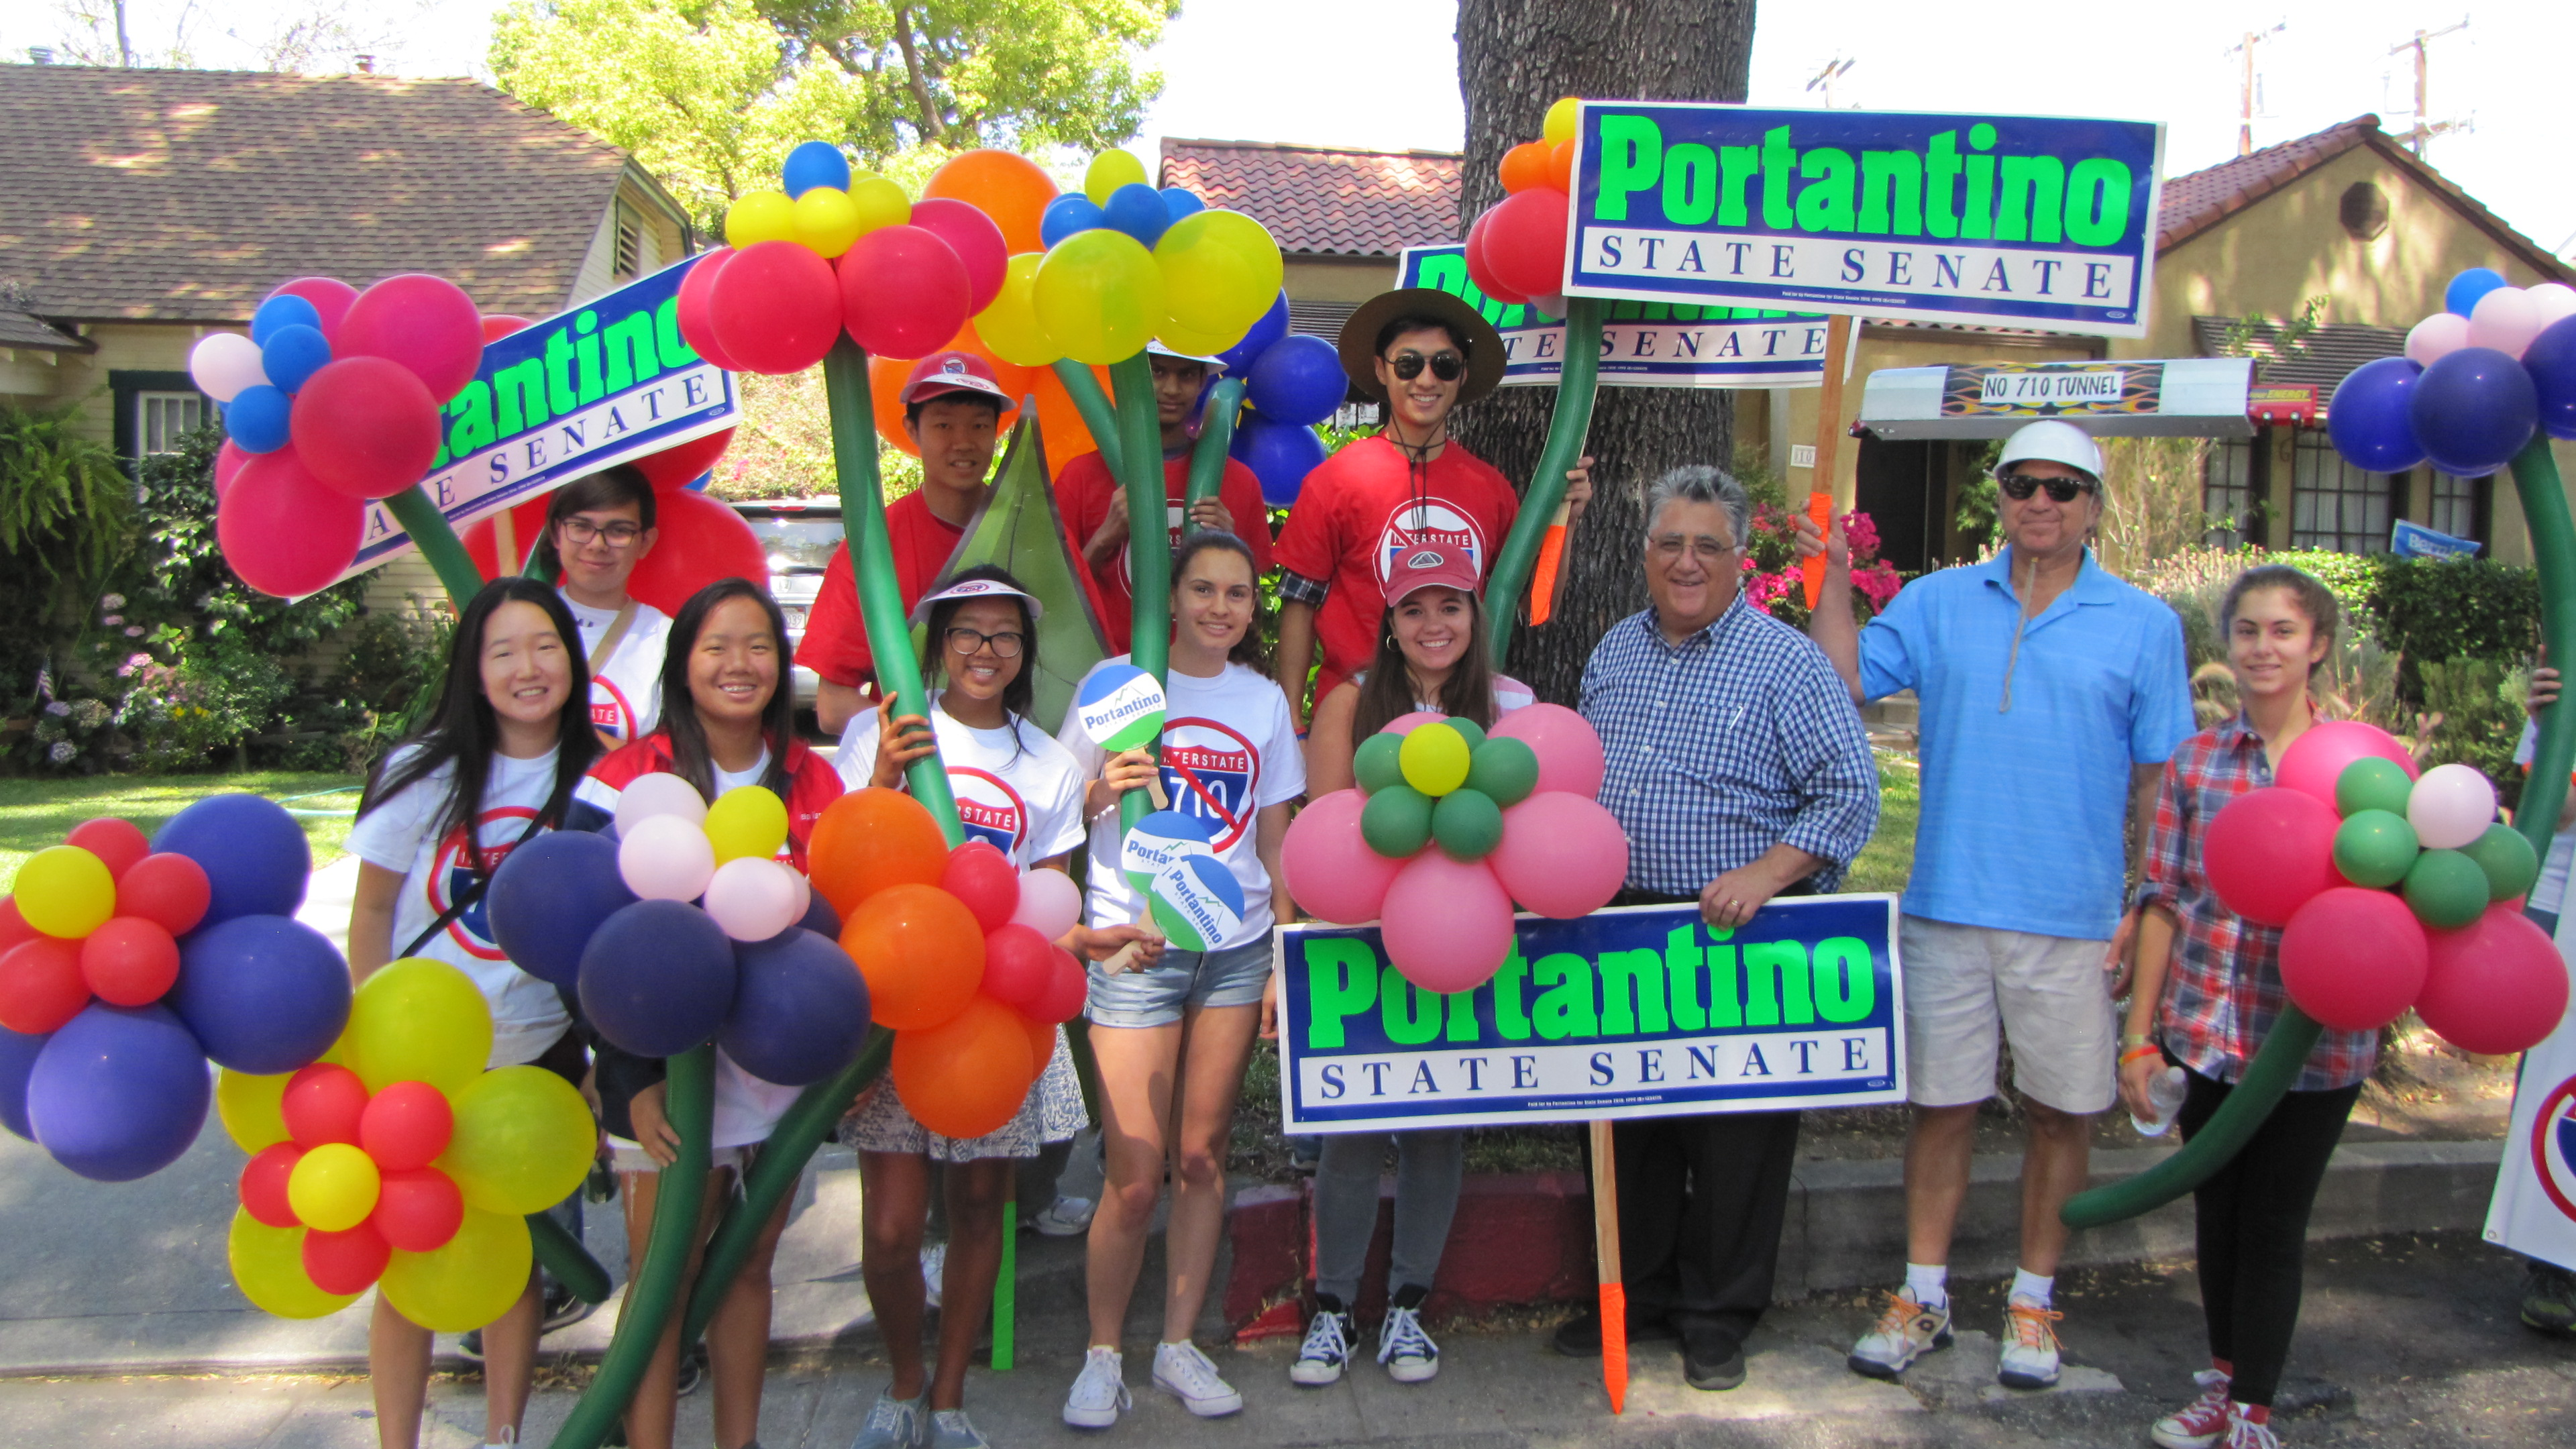 Parade_South_Pasadena.JPG